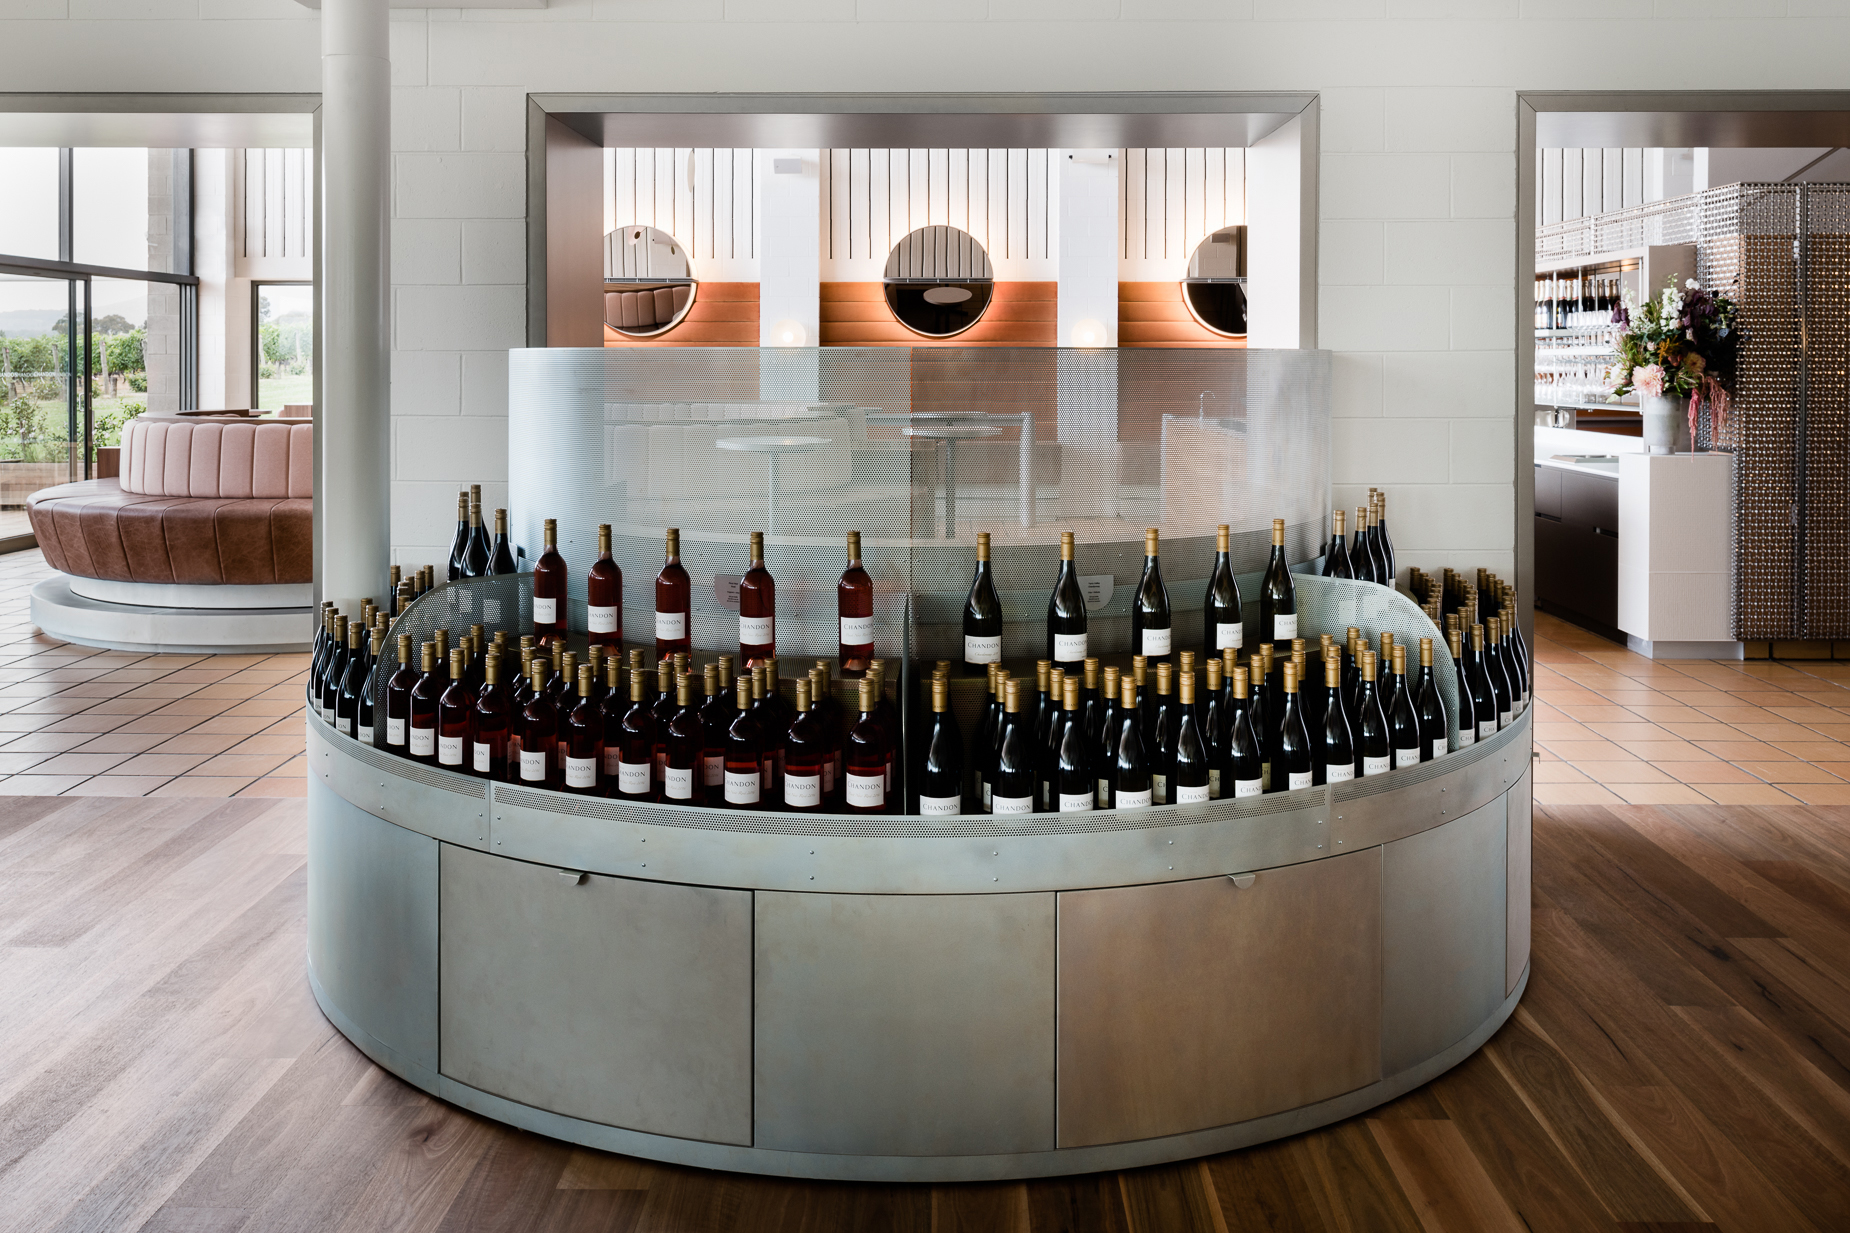 Gallery Of Chandon Australia By Foolscap Studio Local Australian Design And Interiors Yarra Valley, Vic Image 15